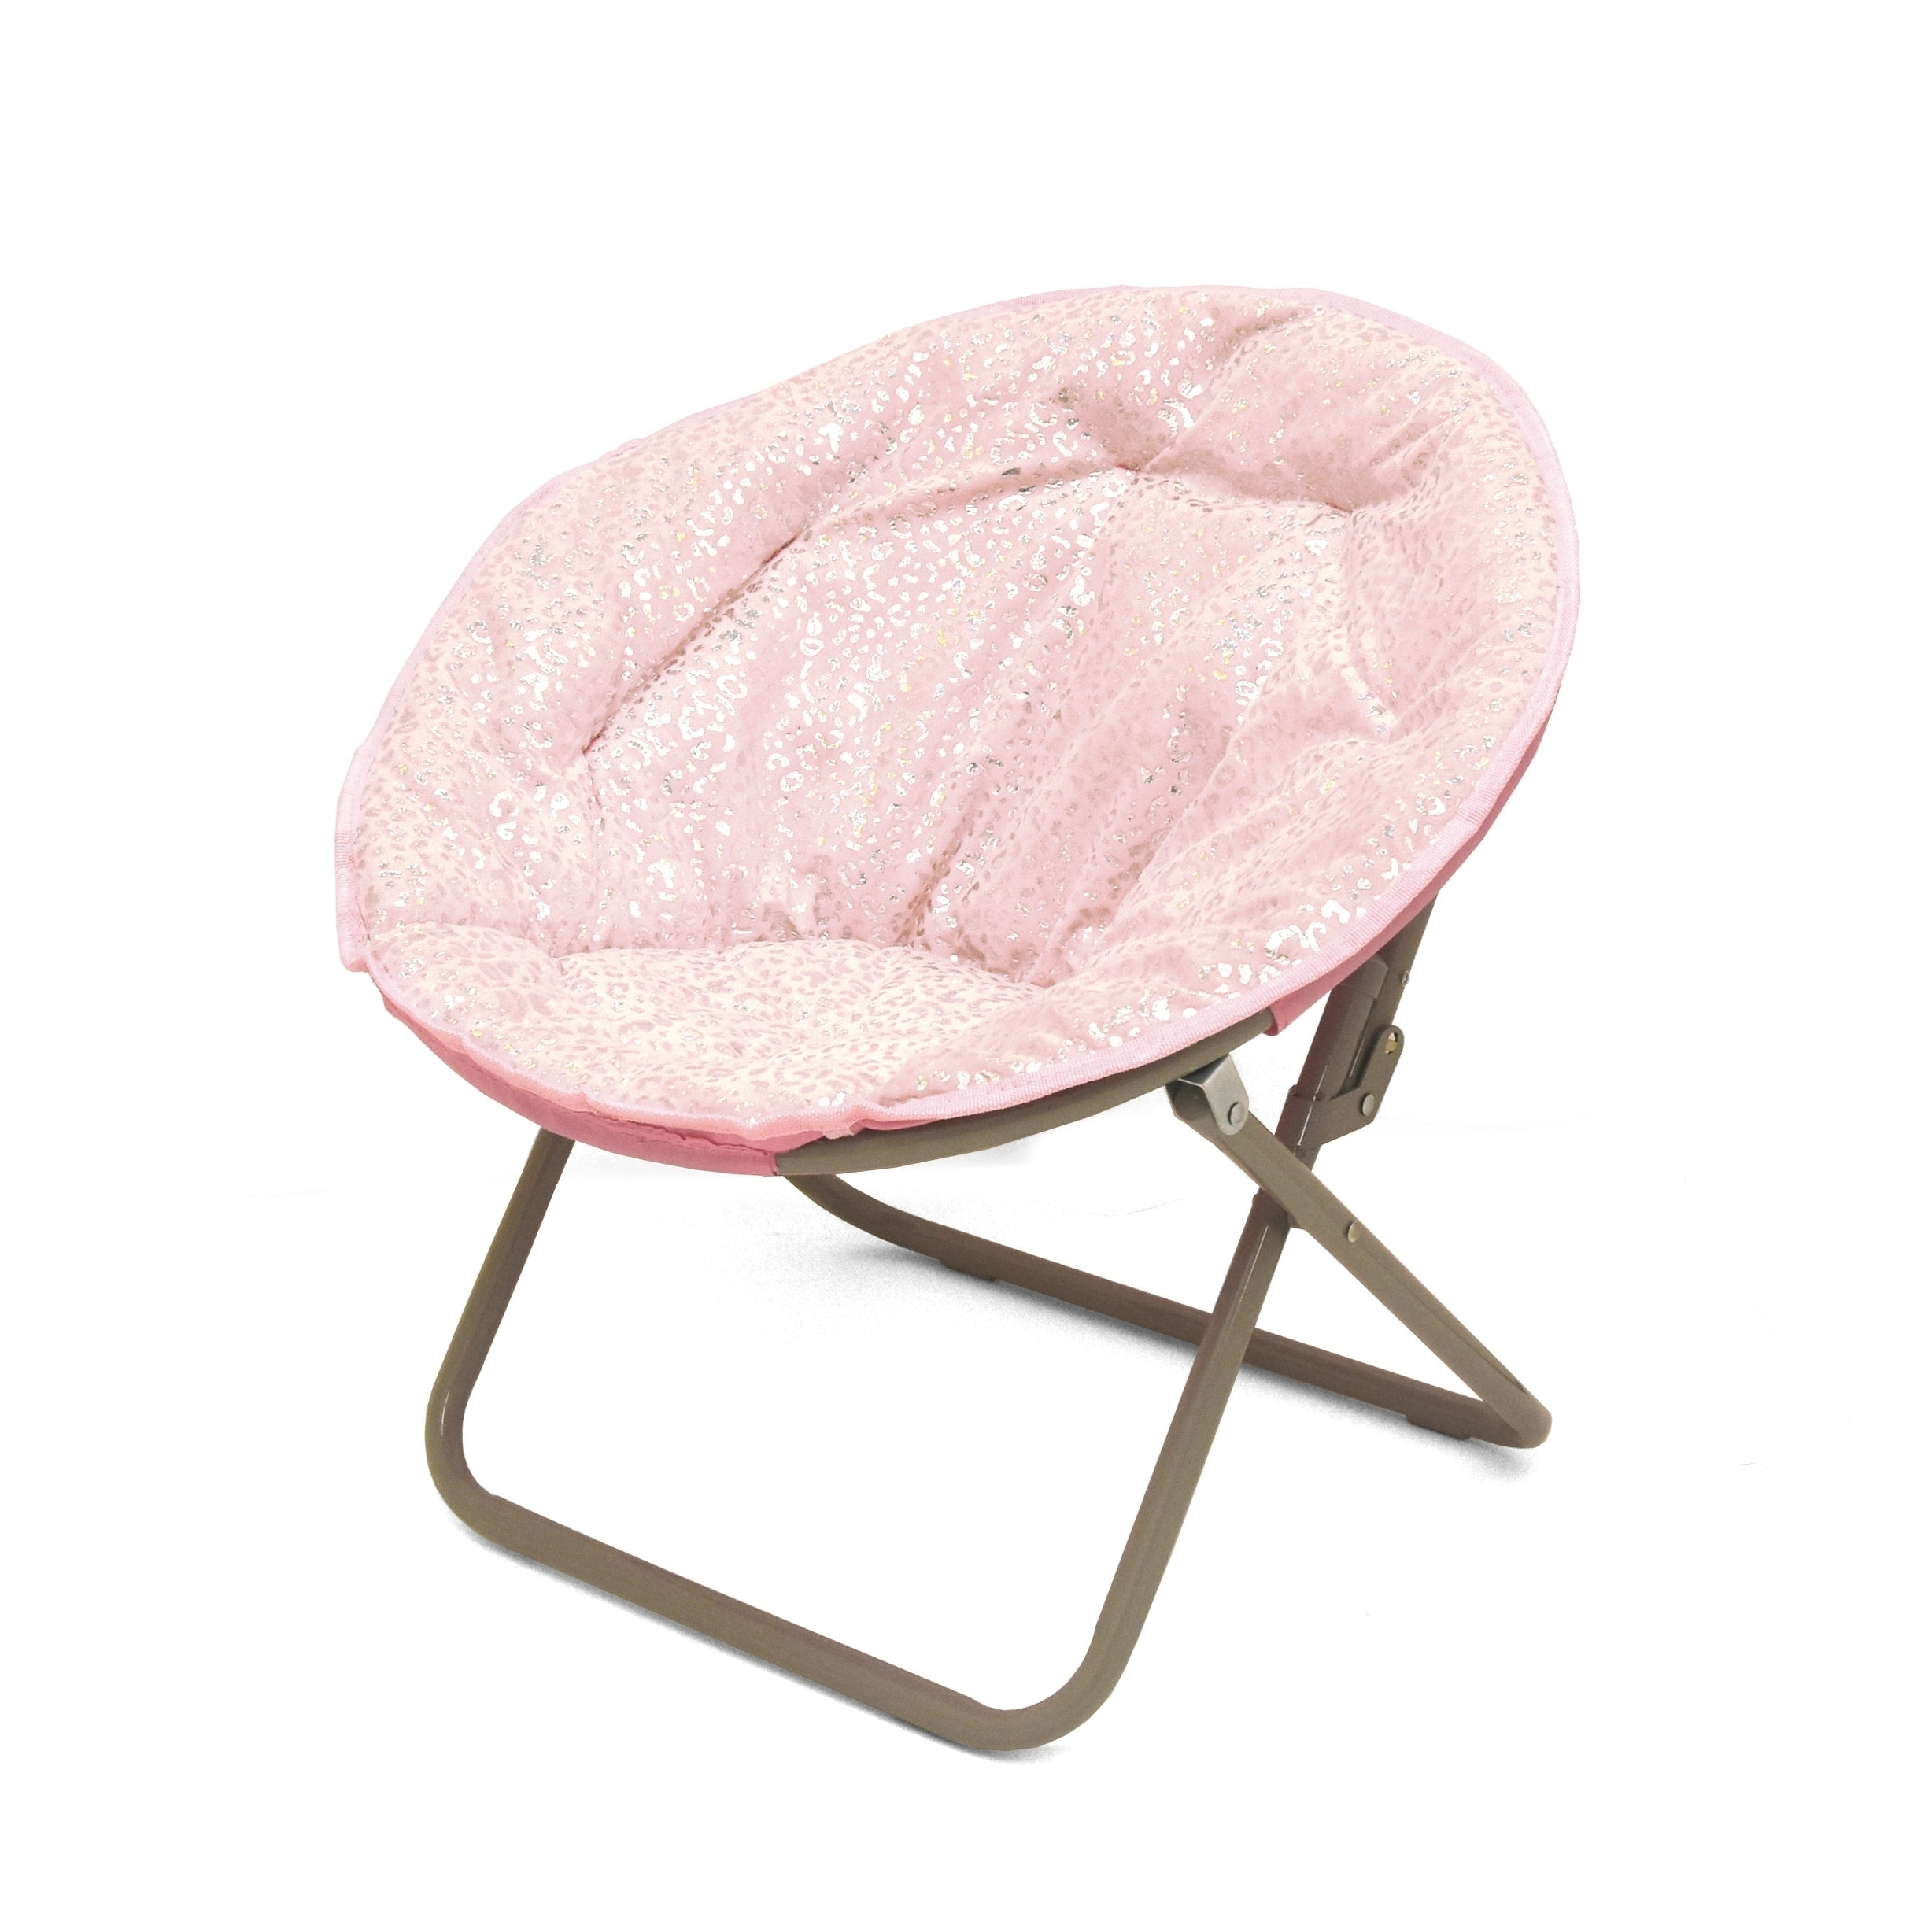 Shop Faux Fur Foil Cheetah Kids Saucer Chair - Free Shipping Today - Overstock - 25071023  sc 1 st  Overstock.com & Shop Faux Fur Foil Cheetah Kids Saucer Chair - Free Shipping Today ...